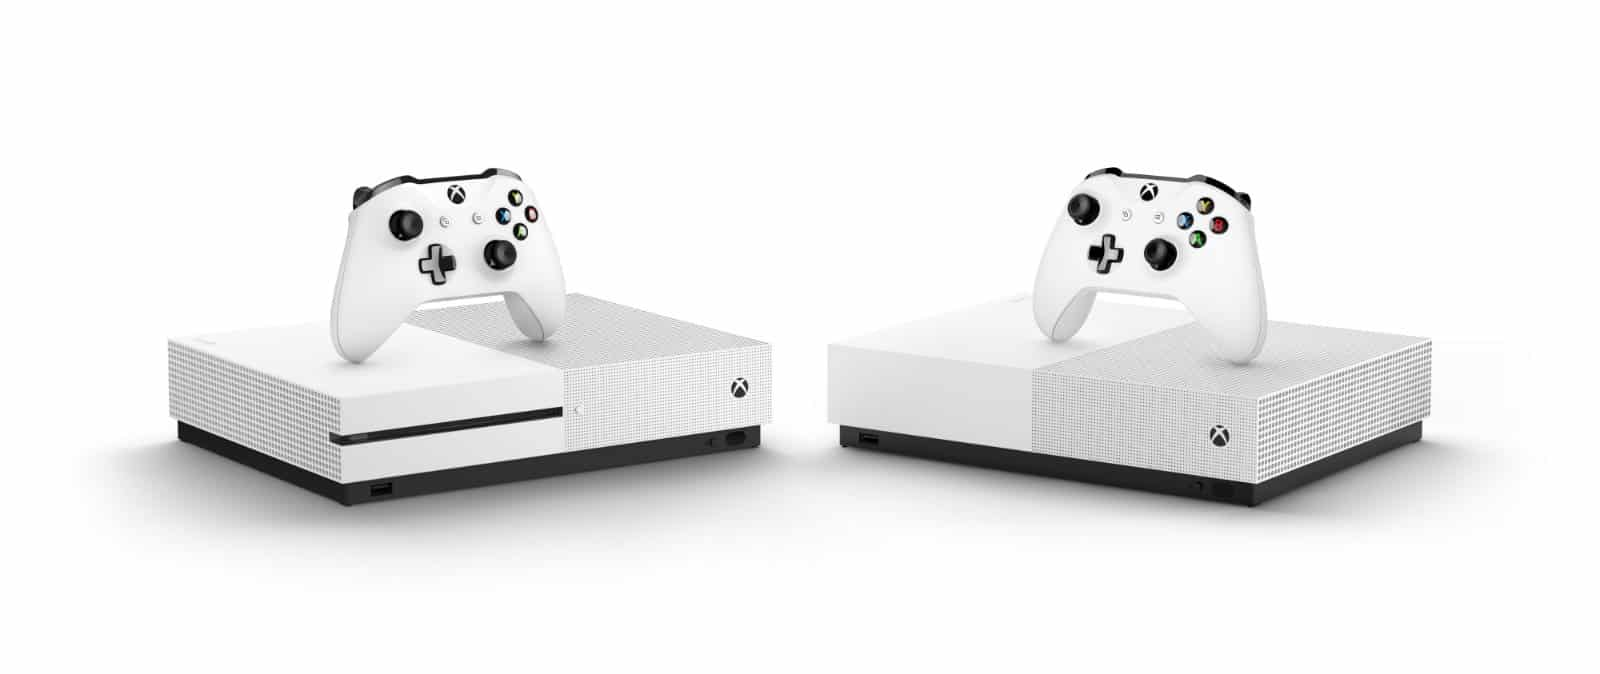 Disc-less Xbox One S